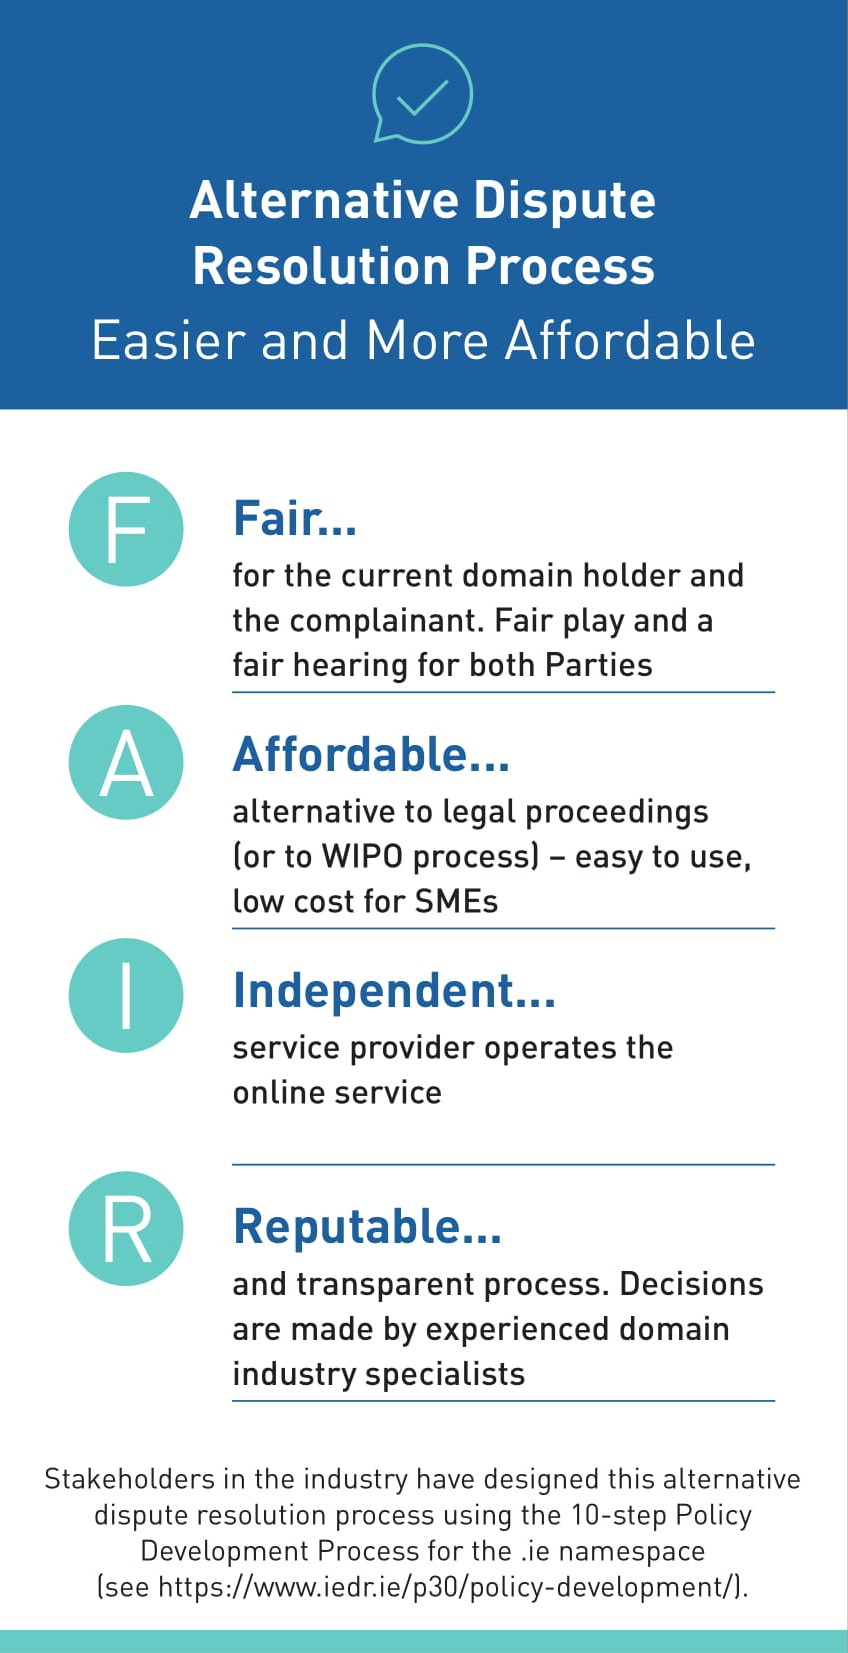 Alternative Dispute Resolution Process Graphic: Fair, Affordable, Independent and Reputable